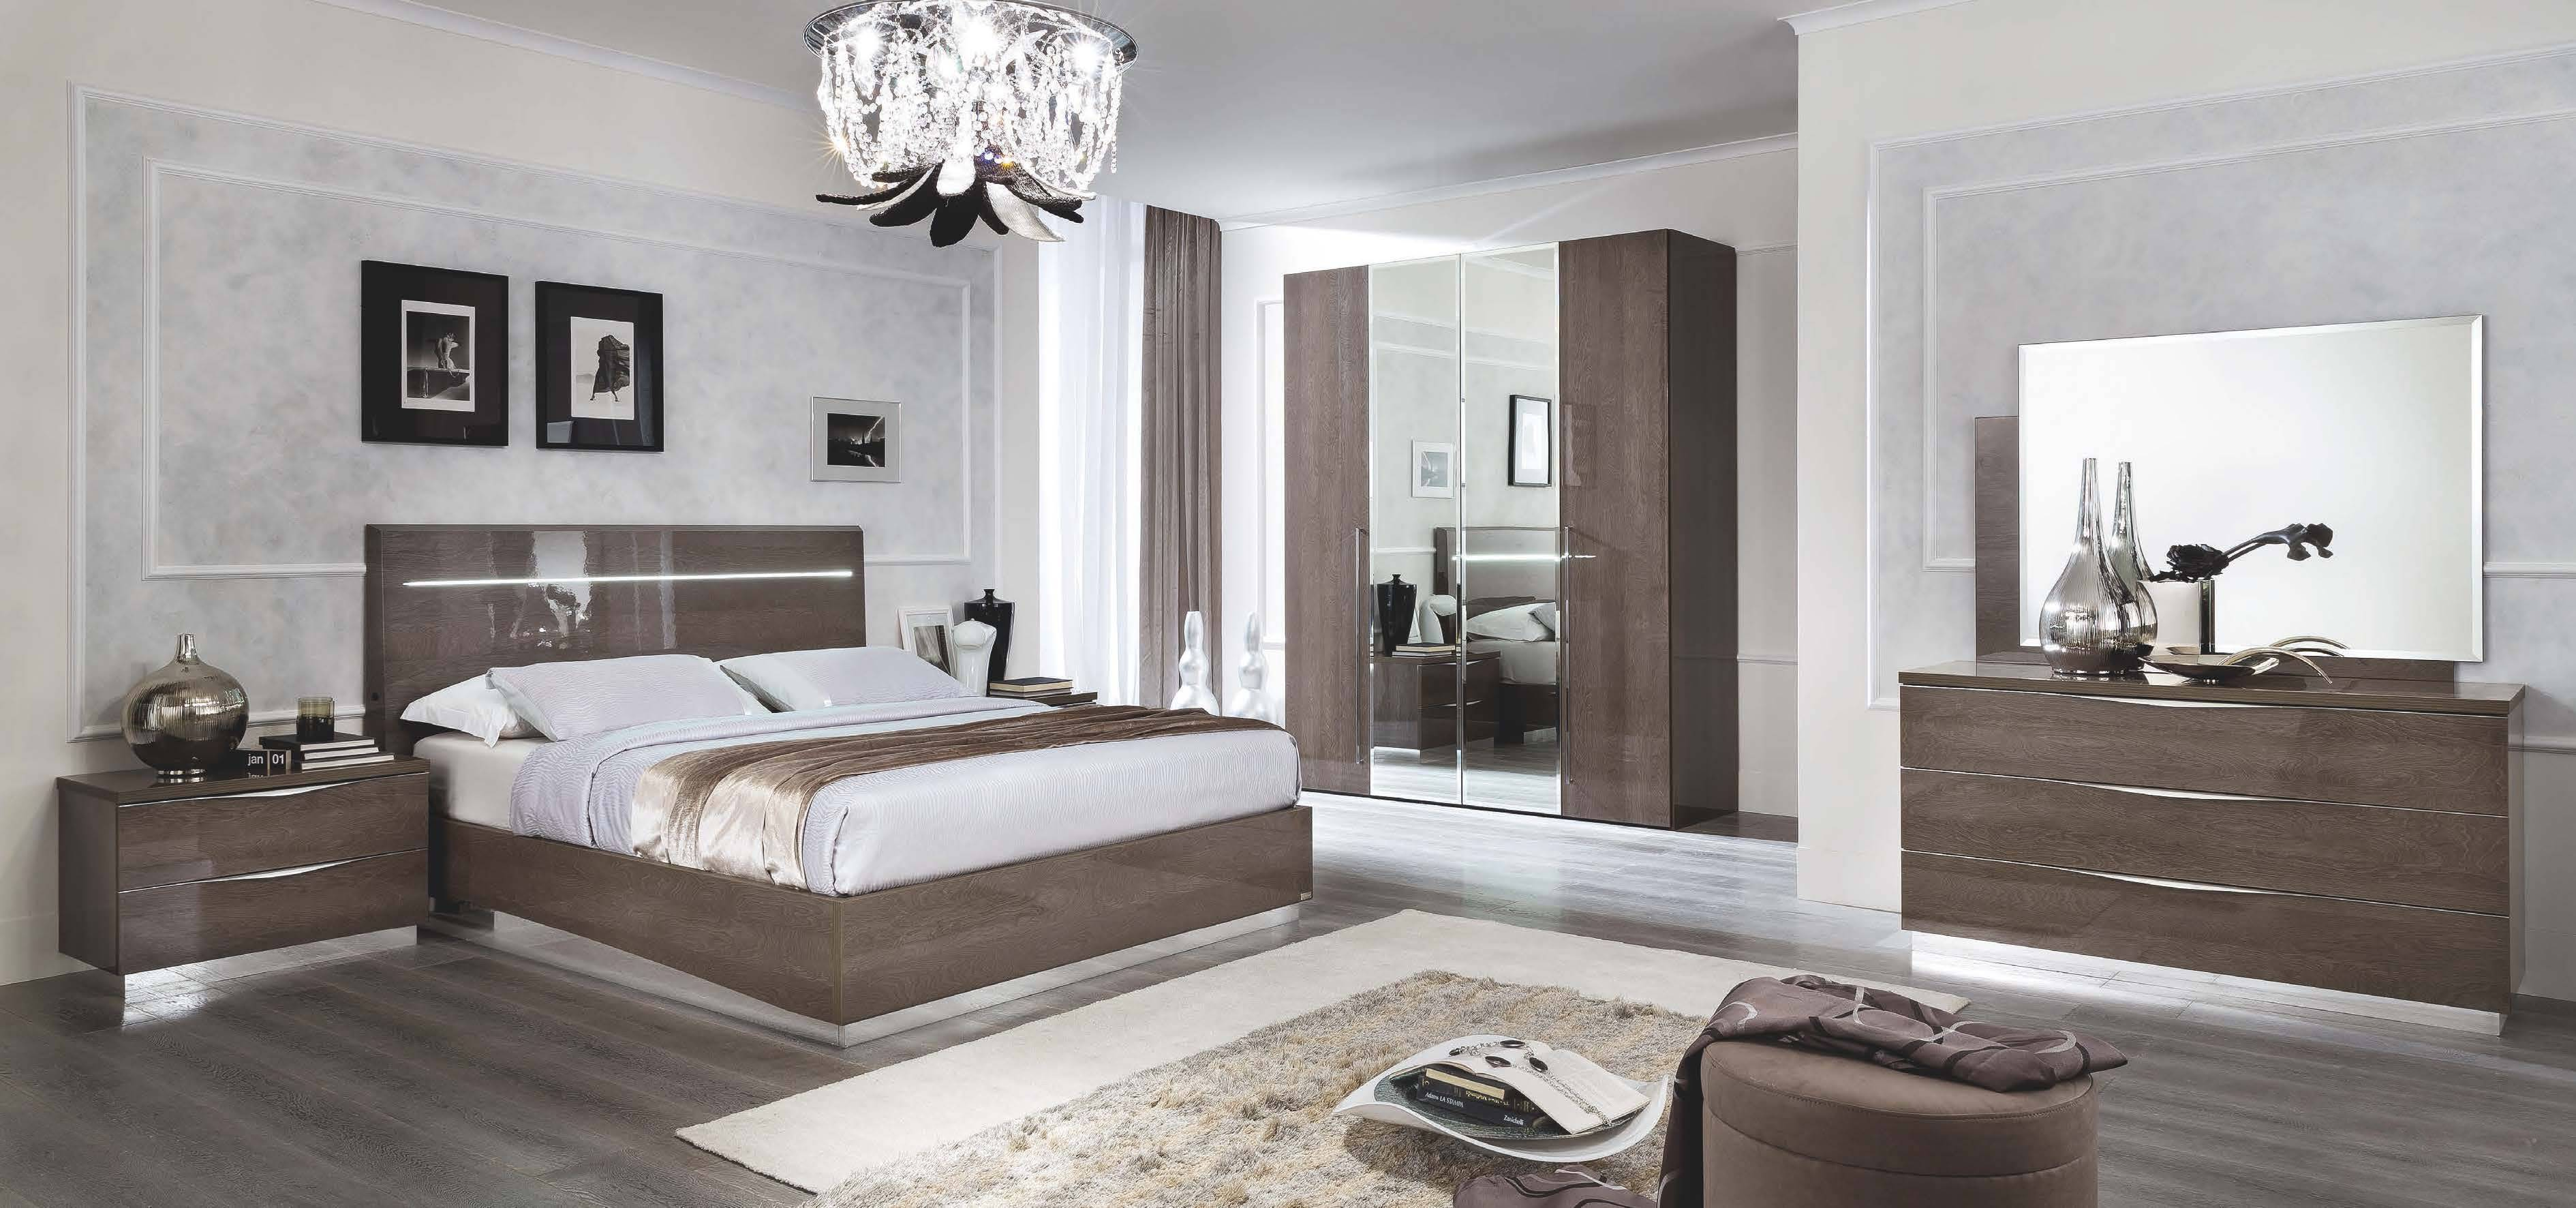 SKU 254912. Made in Italy Quality High End Bedroom Sets